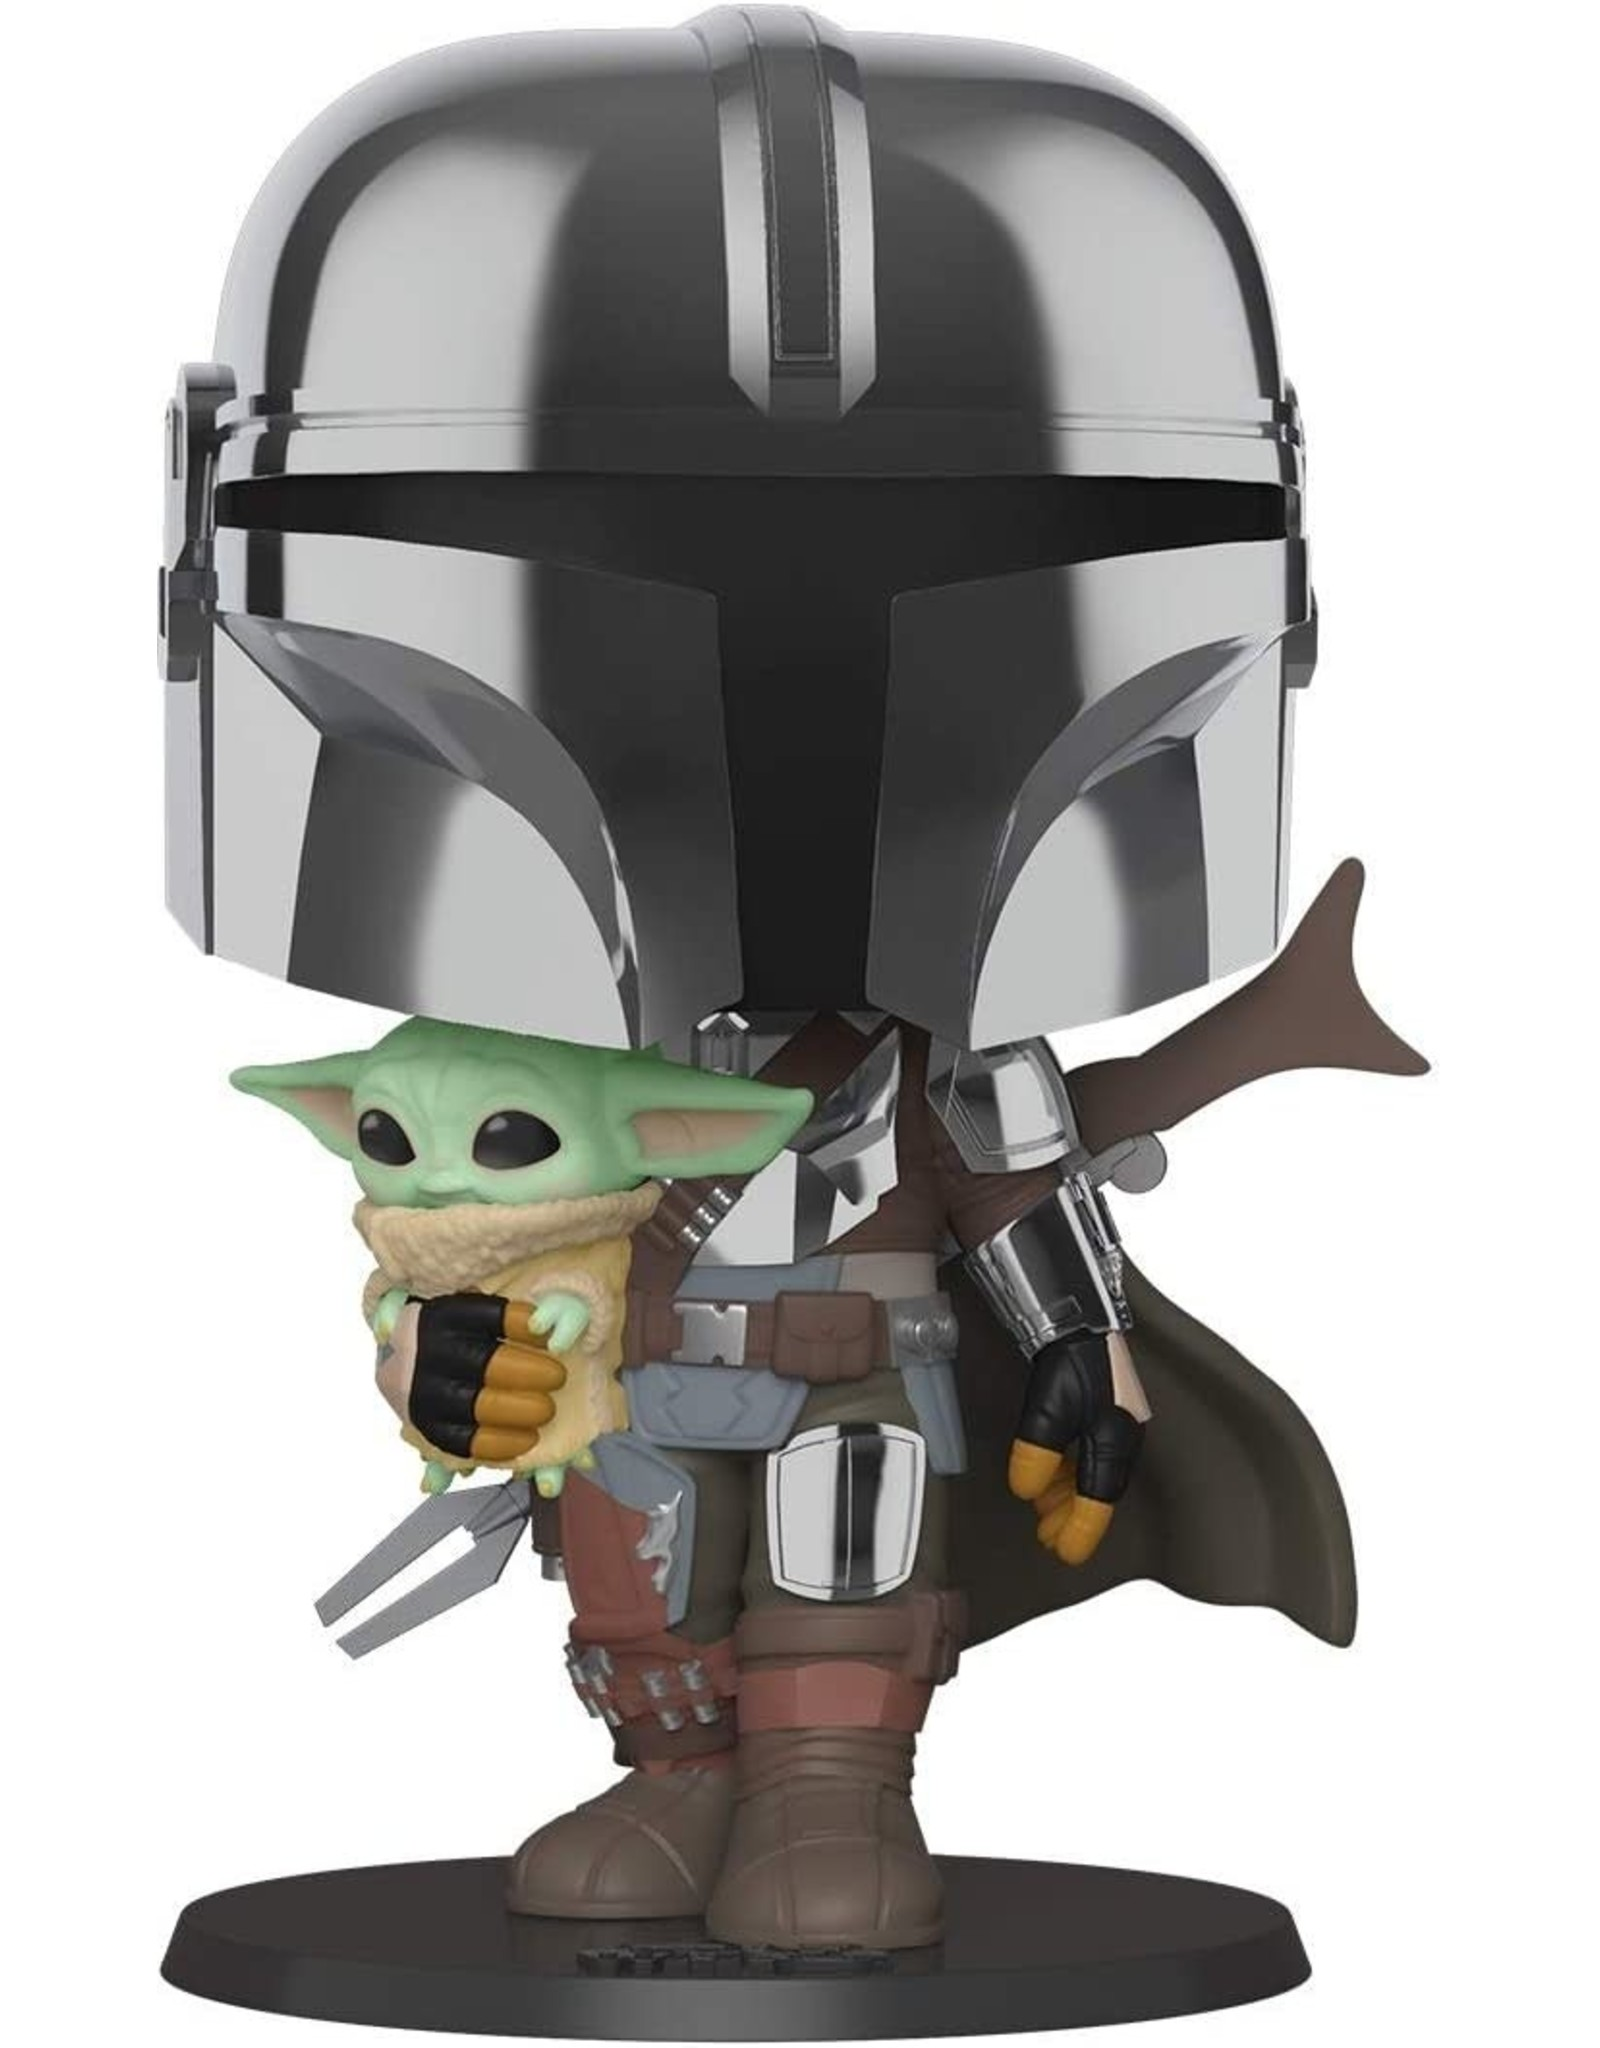 Funko Star Wars: The Mandalorian Chrome 10-Inch Pop! Vinyl Figure